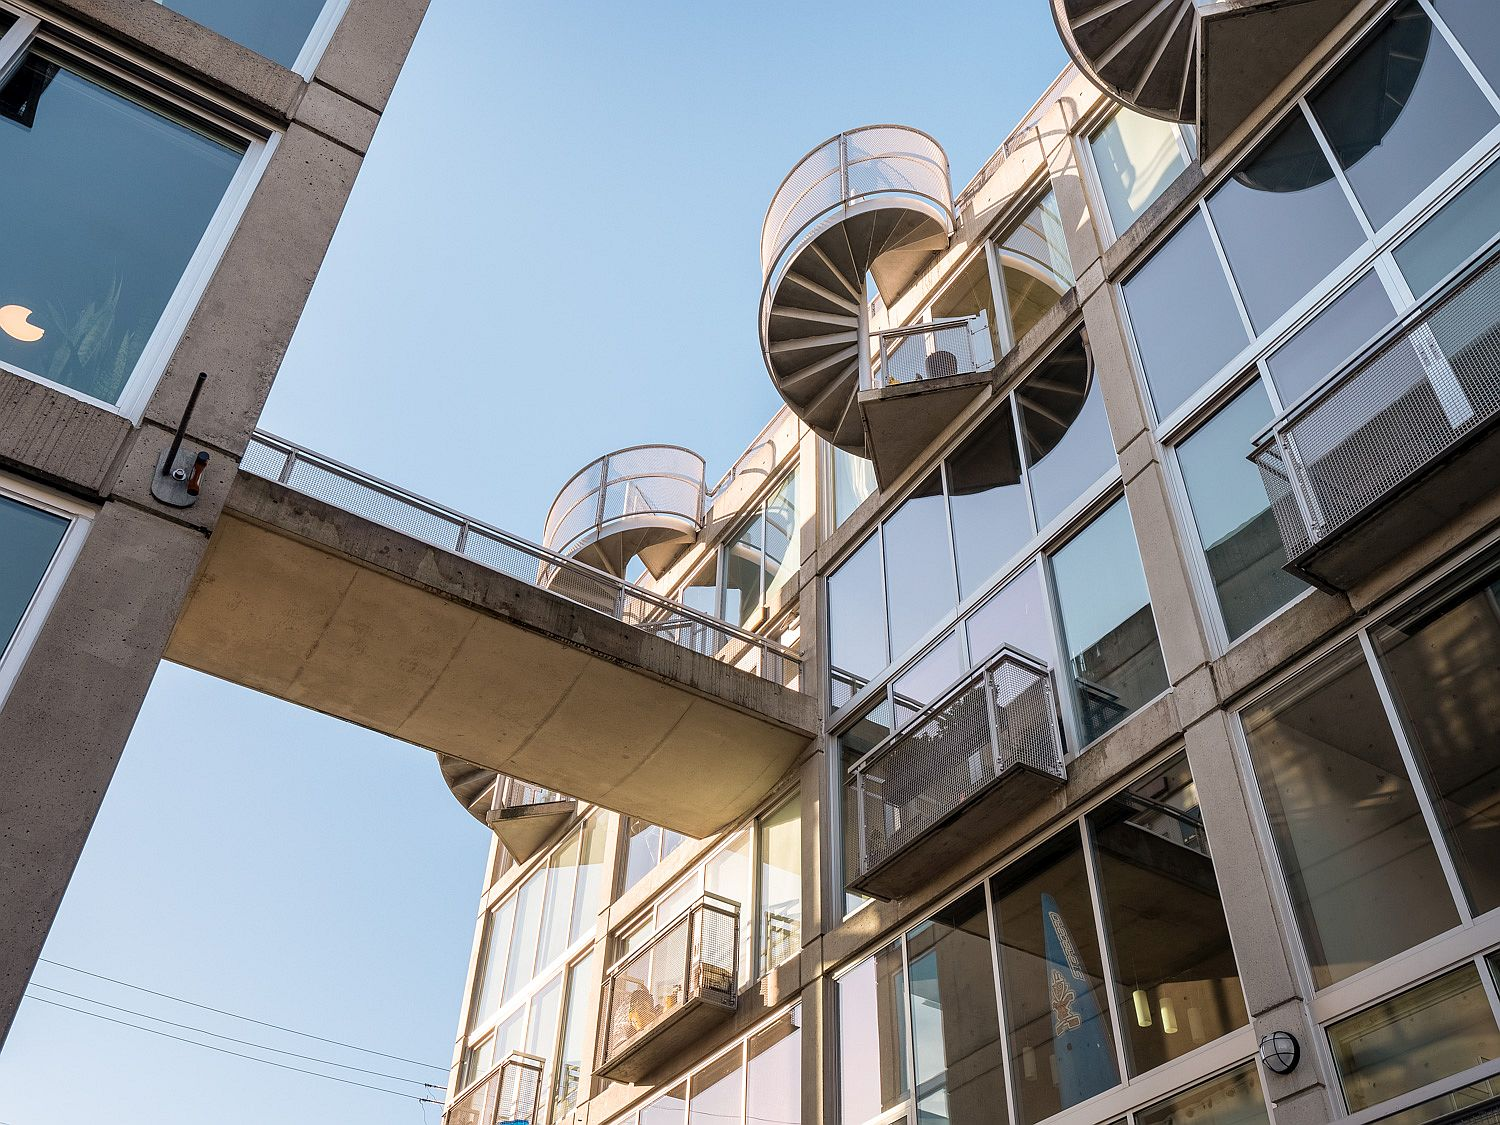 Stylish lofts and apartments sit snugly inside the iconic Waterfall Building